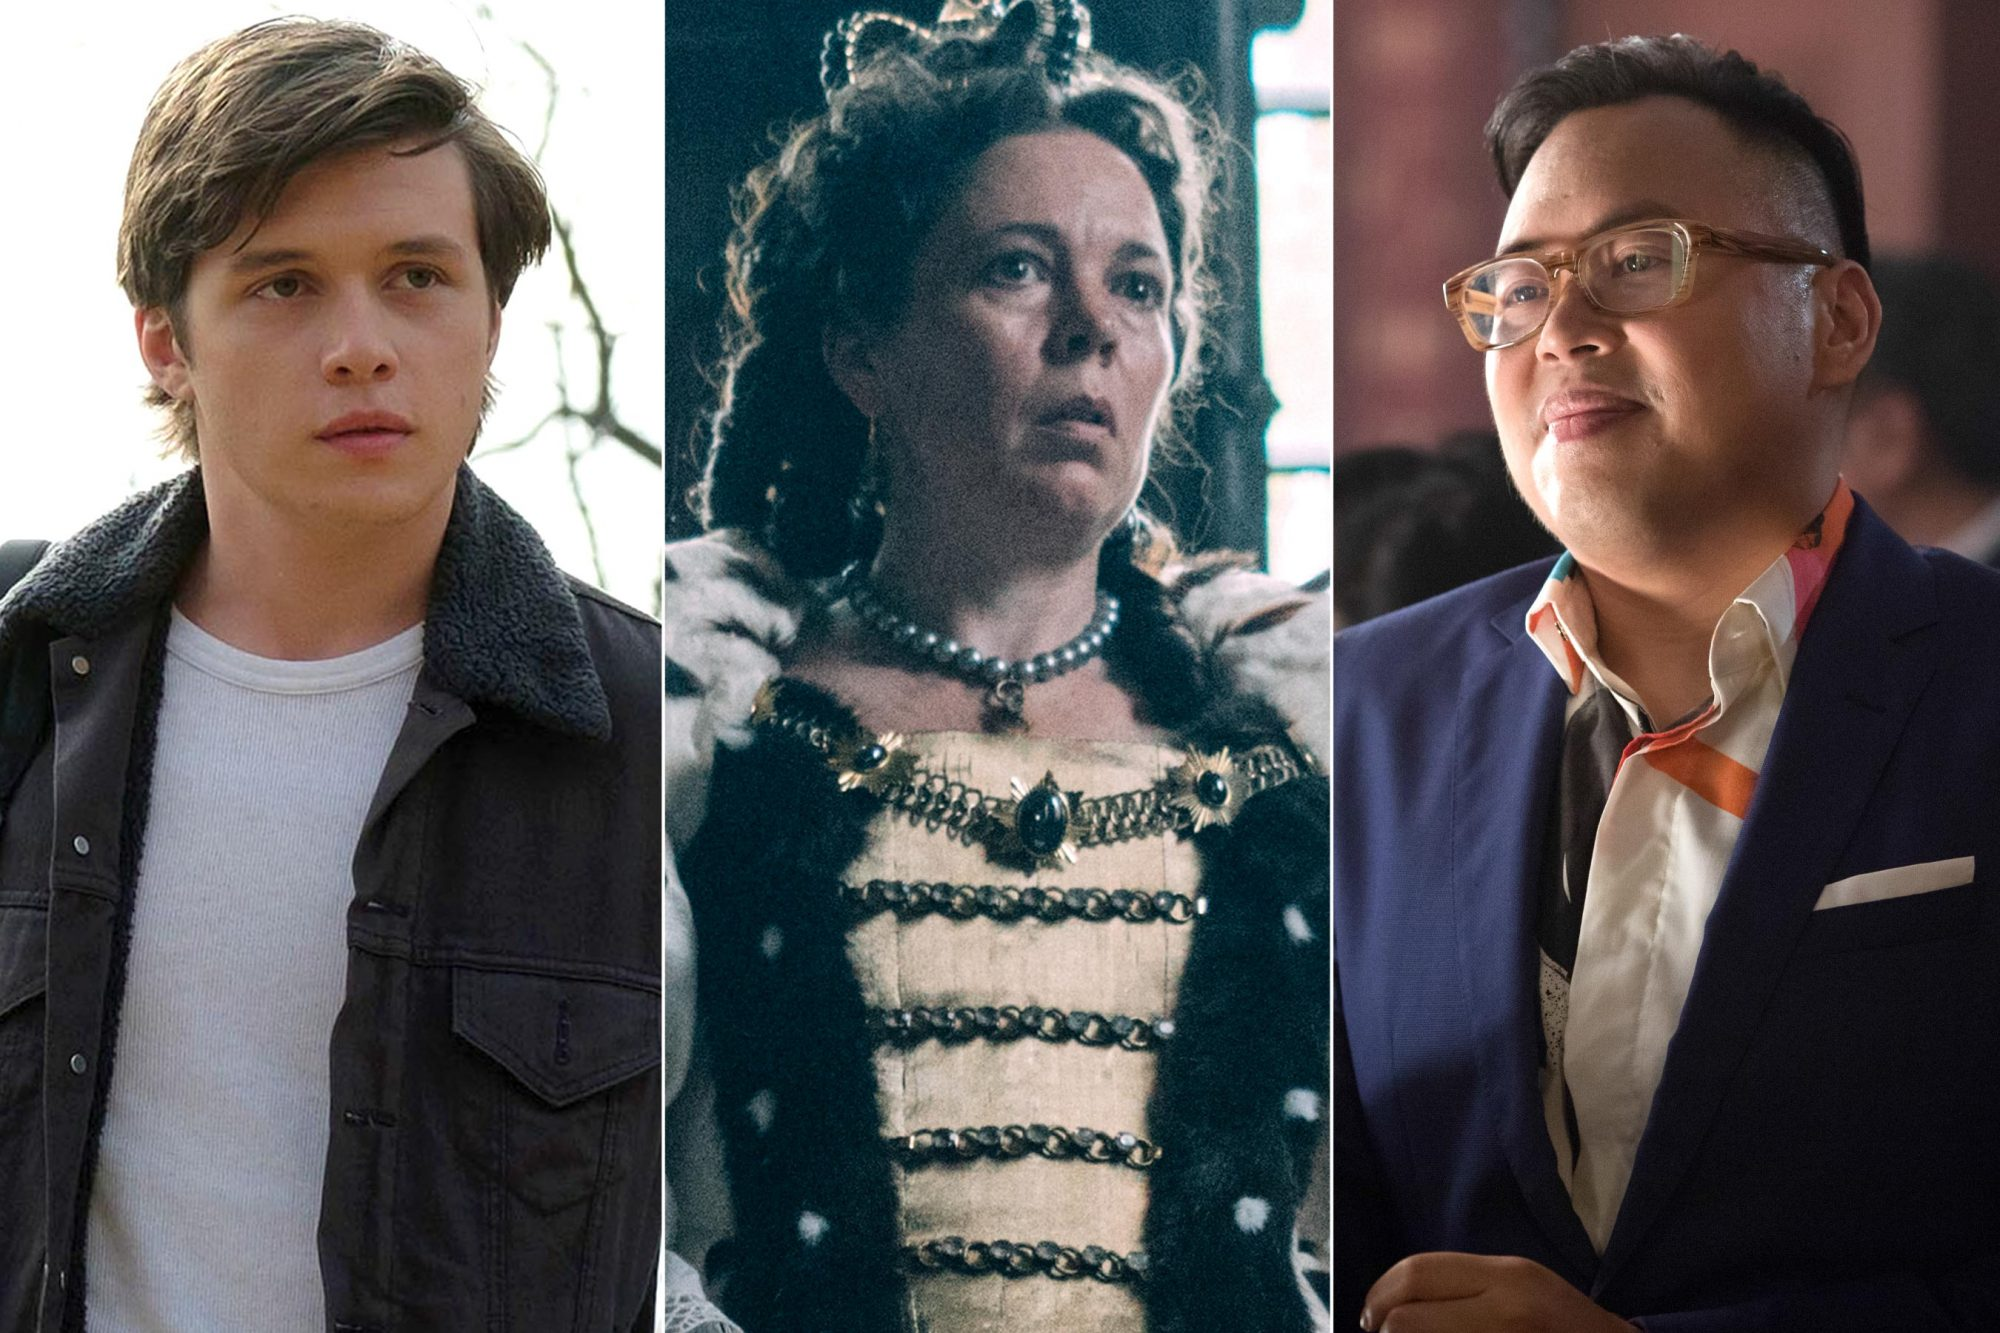 """Nick Robinson stars as Simon in Twentieth Century Fox's LOVE, SIMON. Photo Credit: Ben Rothstein. Olivia Colman in the film THE FAVOURITE. Photo by Atsushi Nishijima.© 2018 Twentieth Century Fox Film Corporation All Rights Reserved CR: Atsushi Nishijima/Fox Searchlight CRAZY RICH ASIANS NICO SANTOS as Oliver in Warner Bros. Pictures' and SK Global Entertainment's and Starlight Culture's contemporary romantic comedy """"CRAZY RICH ASIANS,"""" a Warner Bros. Pictures release. Photo Credit: Sanja Bucko/Warner Bros."""